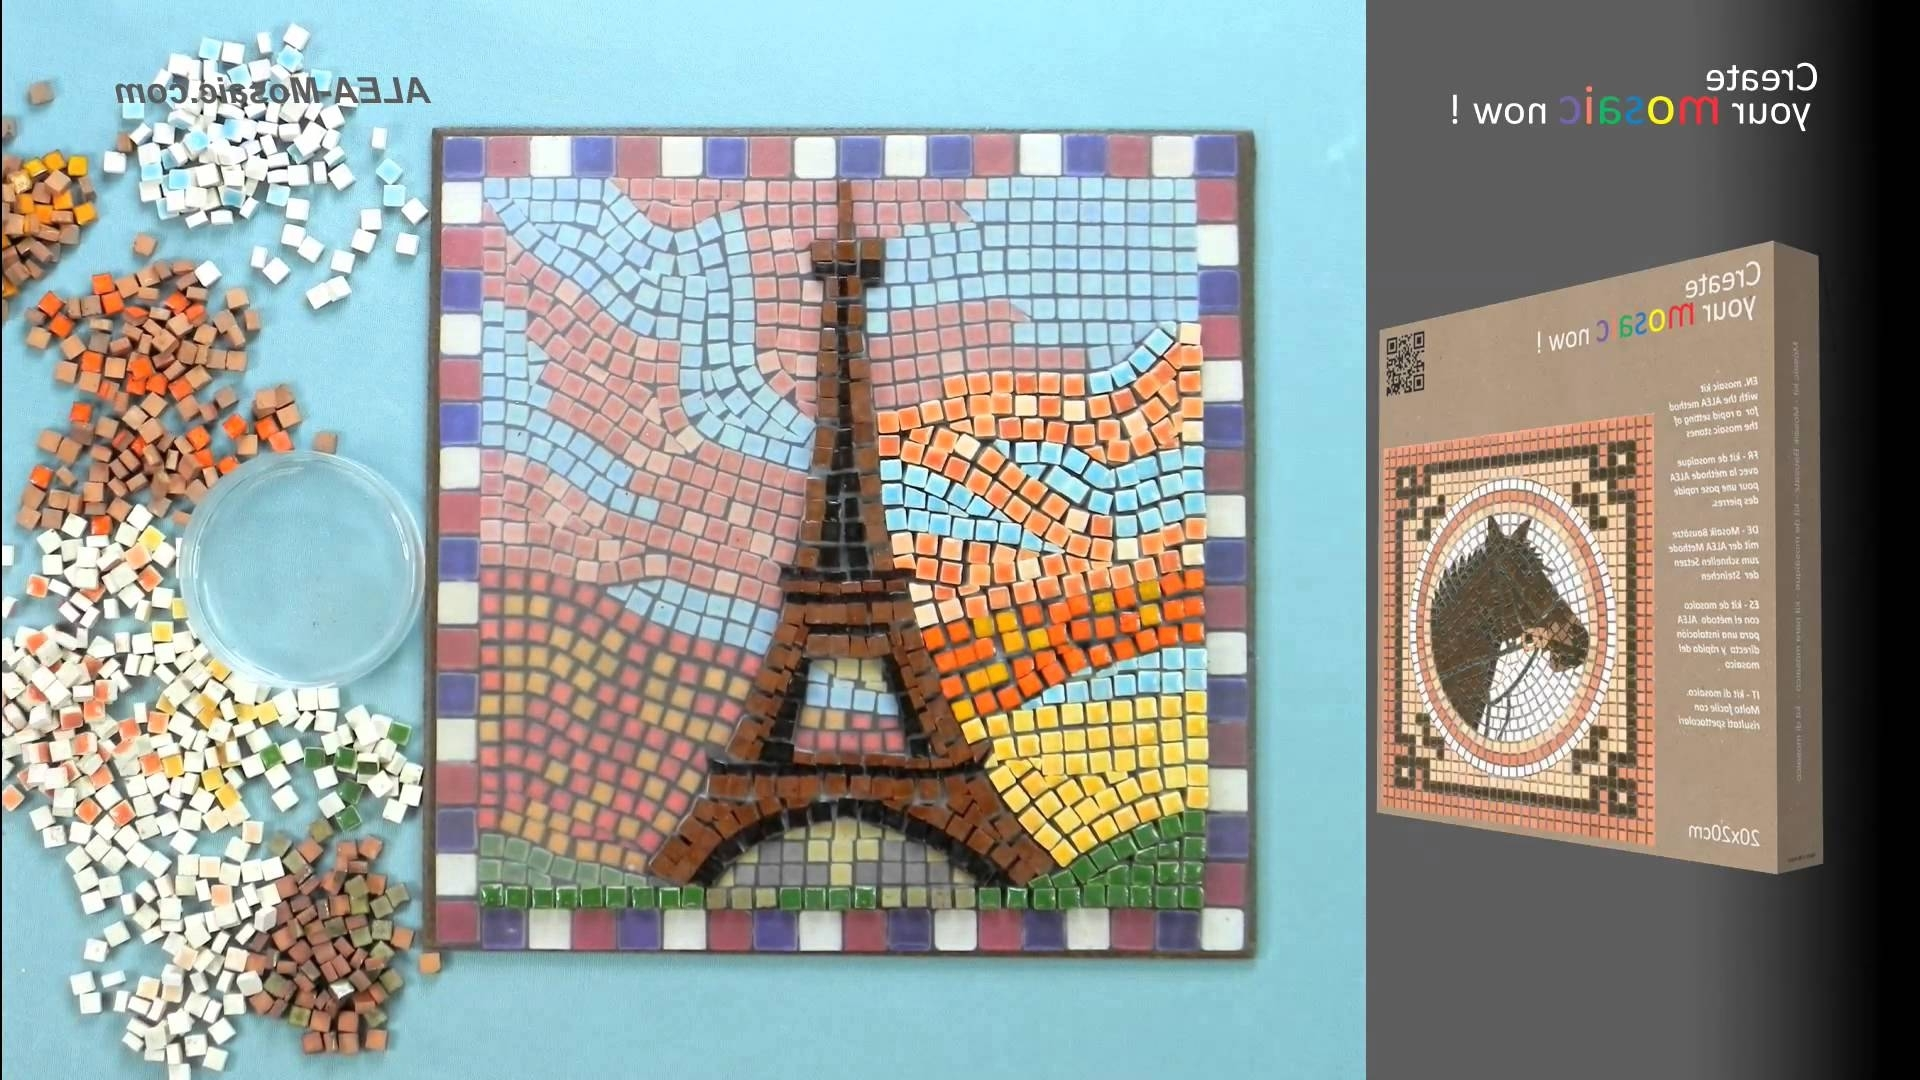 Alea Mosaic – Mosaic Kit 7'' Square, 20X20Cm, – Youtube With Regard To Well Liked Mosaic Art Kits For Adults (View 1 of 15)